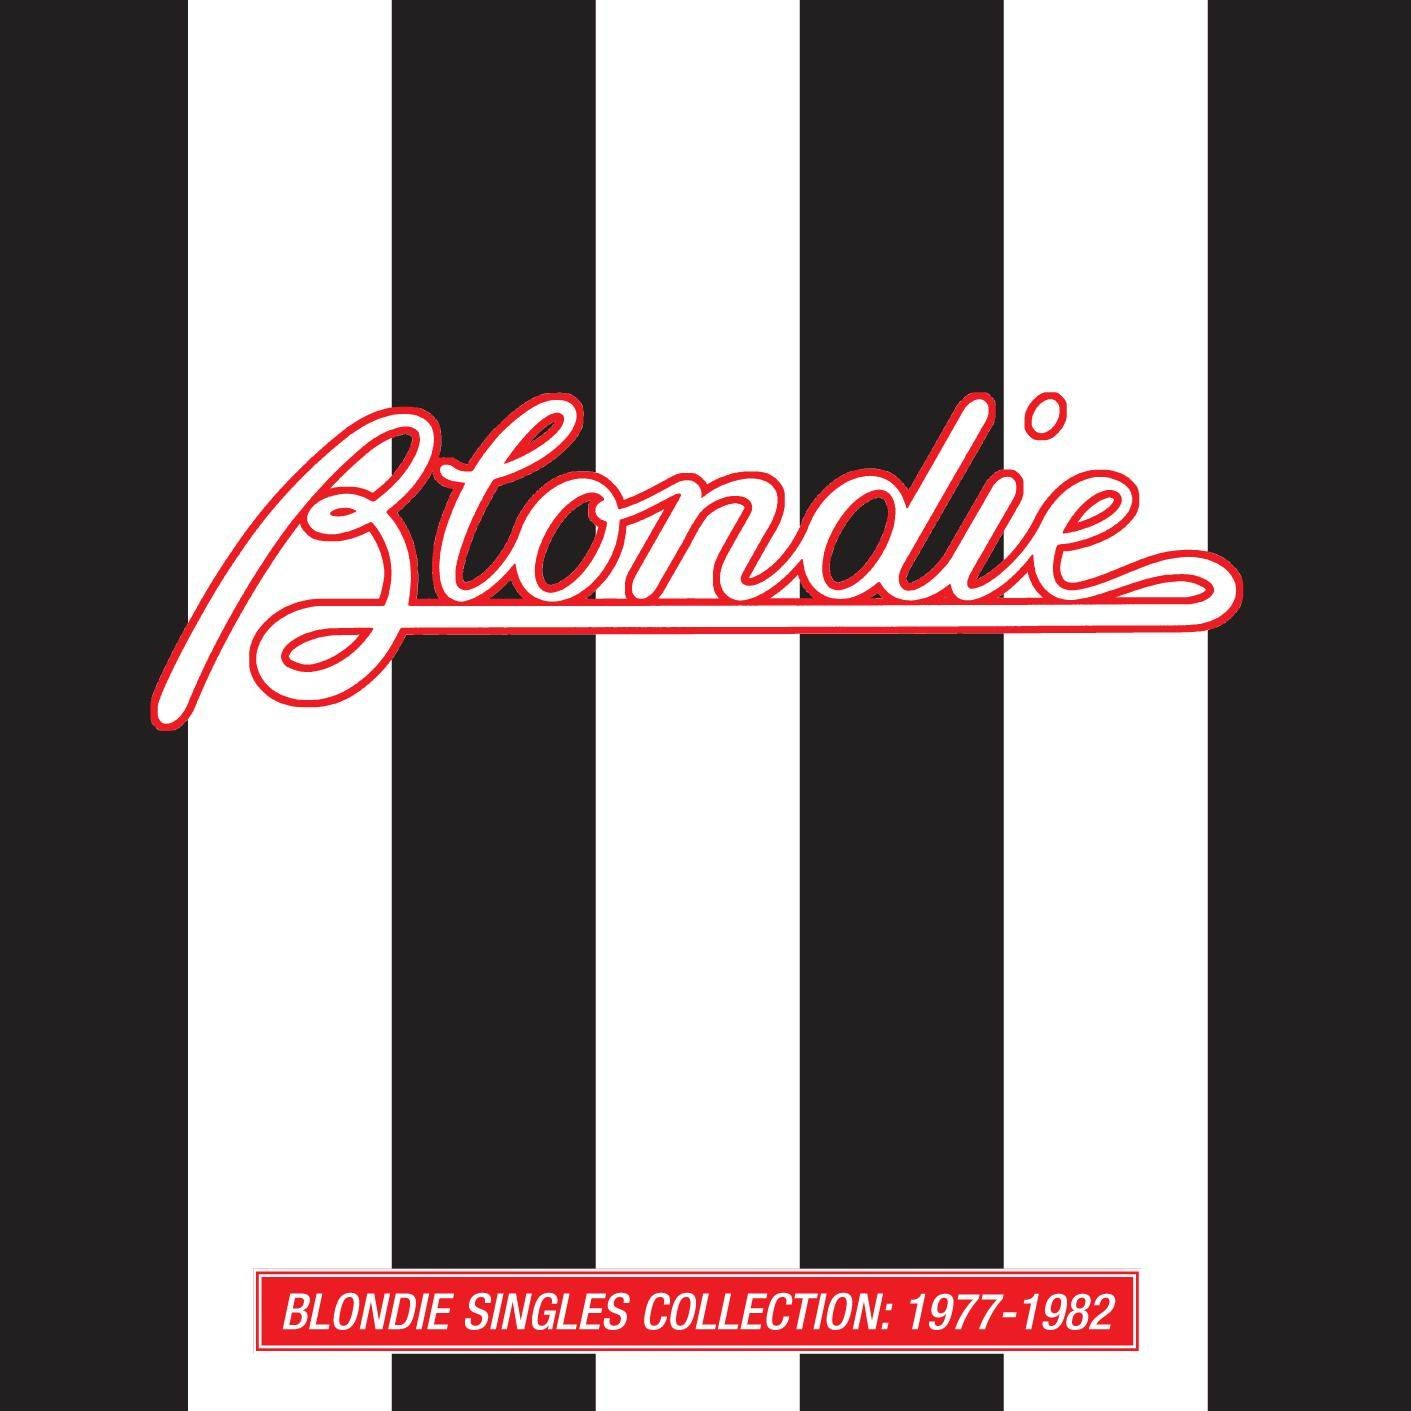 Blondie singles collection